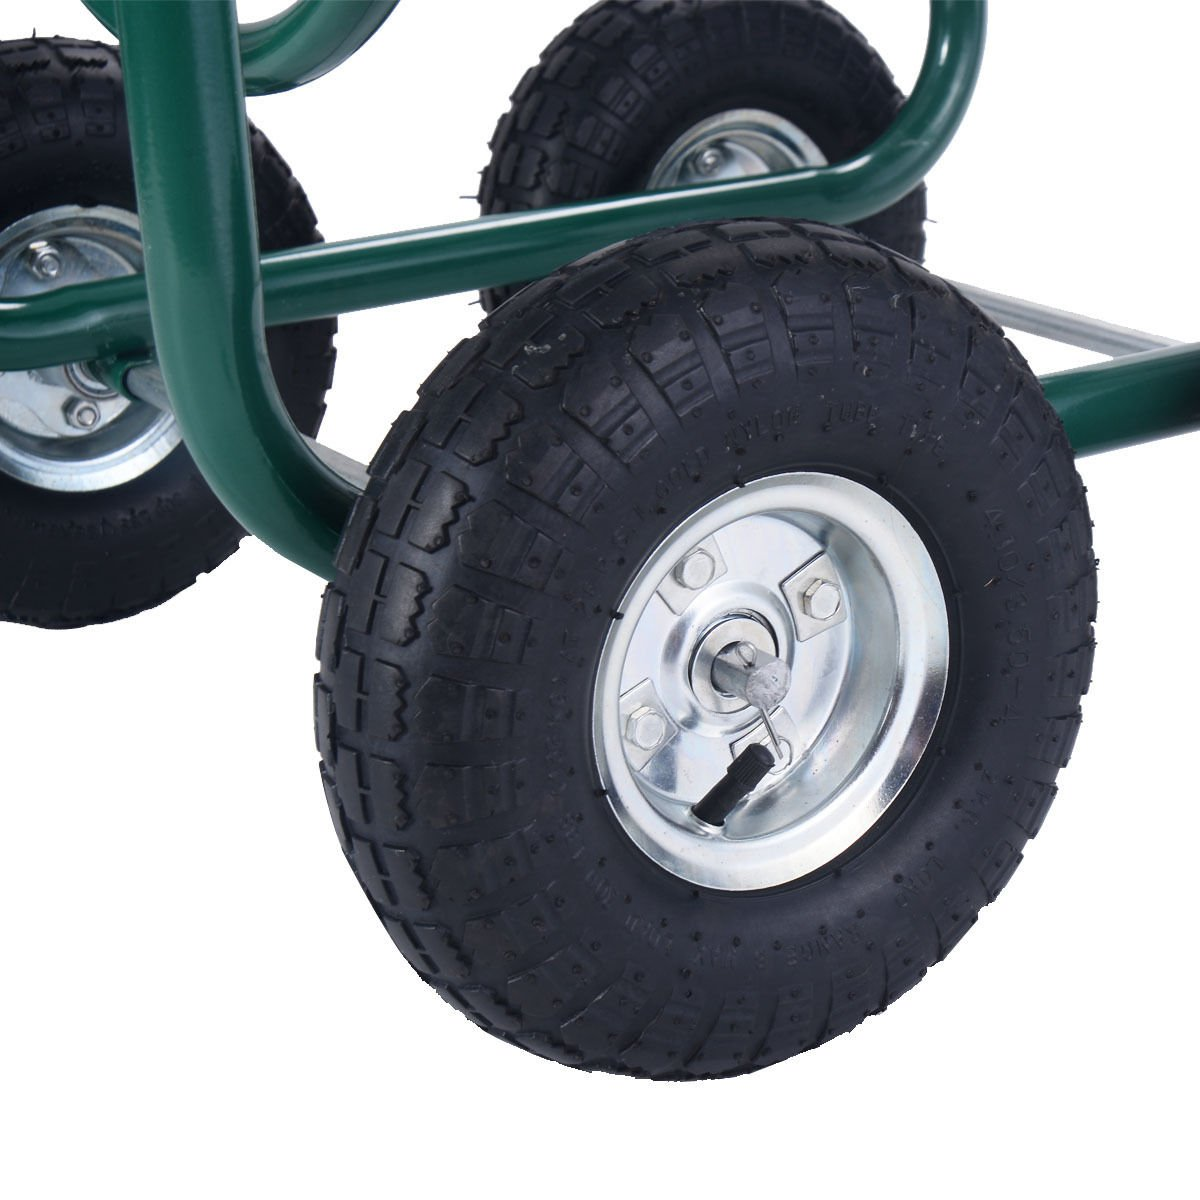 Wakrays Garden Water Hose Reel Cart 300FT Outdoor Heavy Duty Yard Planting W/Basket New by Wakrays (Image #5)